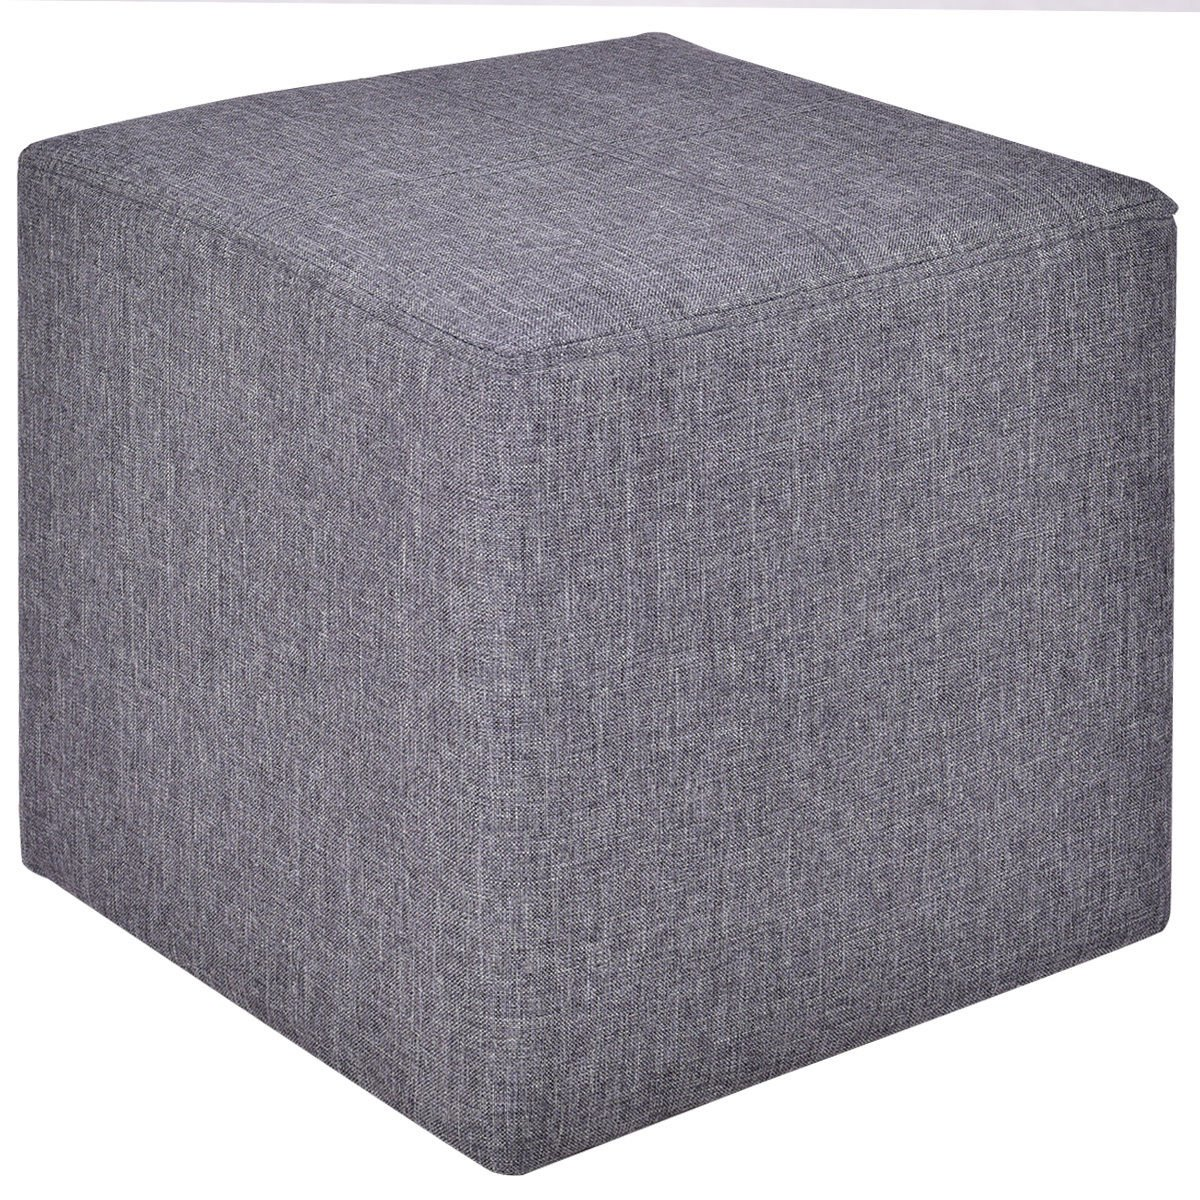 Square Ottoman Box Foot Stool Seat Footrest Wood Frame Linen Gray